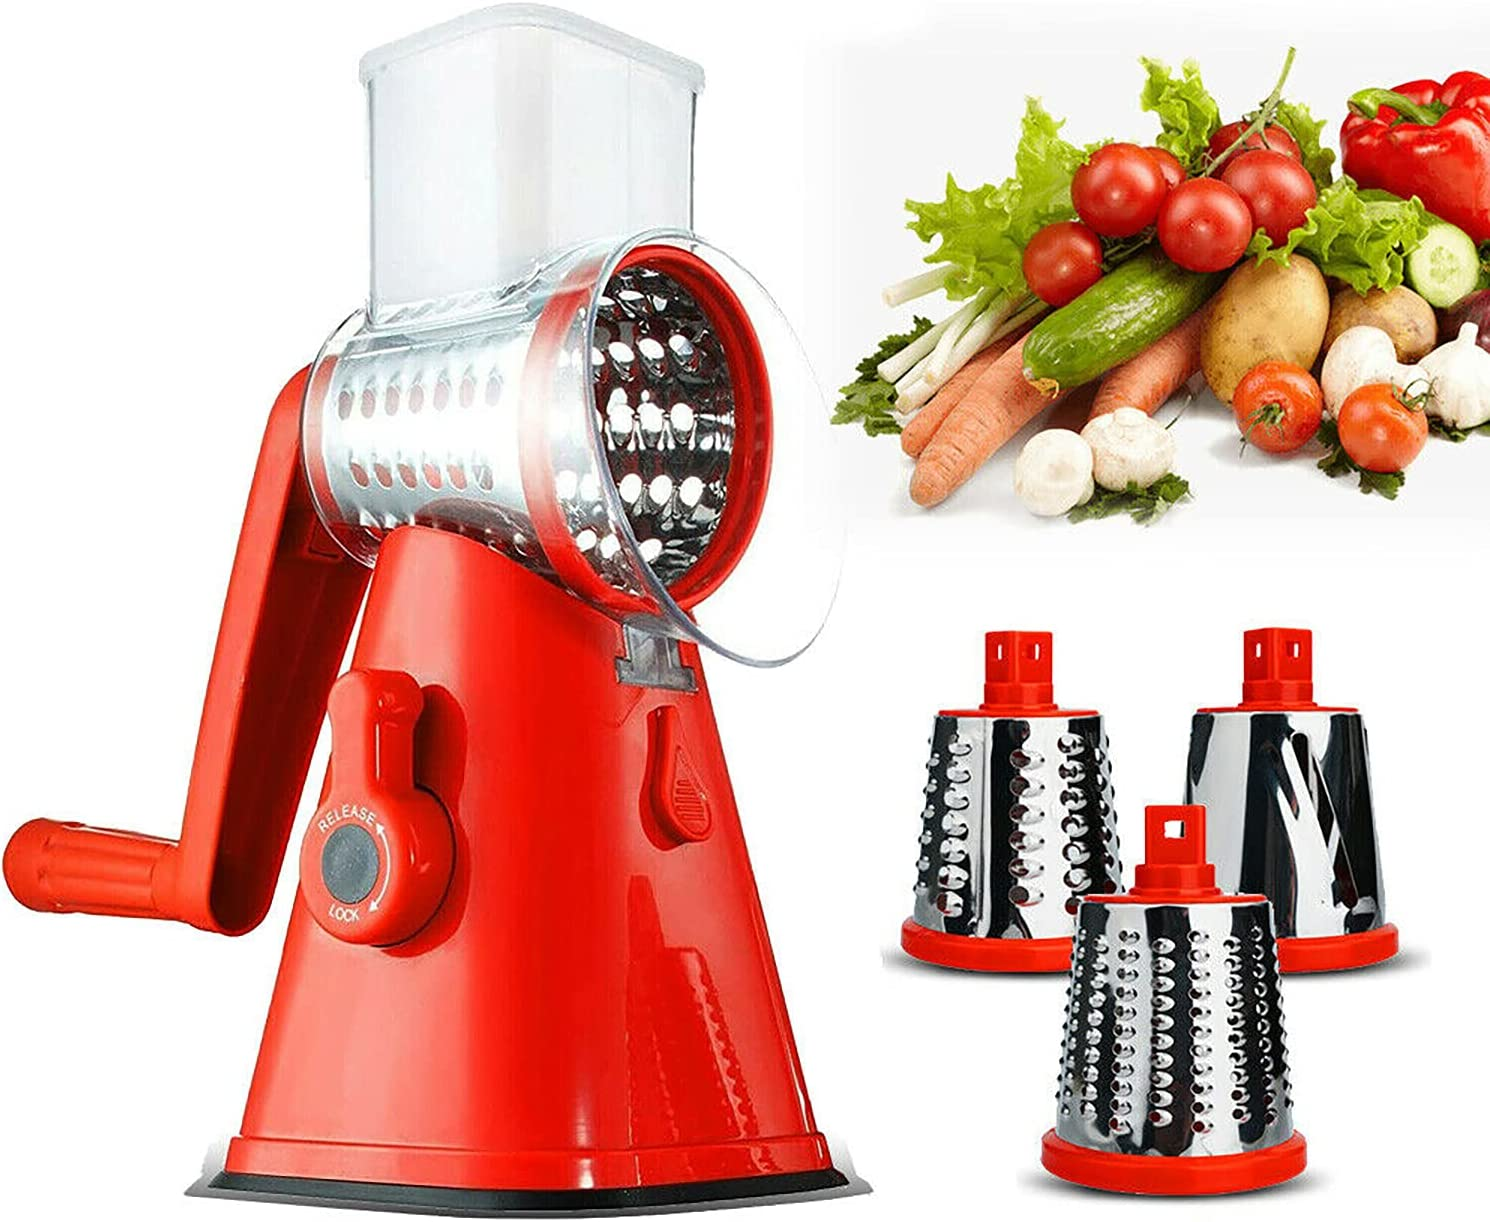 Cheese Grater Mandoline Slicer Vegetable Chopper with 3 Interchangeable Blades for Fruit,Vegetables,Nuts with Strong Suction Base and Cleaning Brush,Red